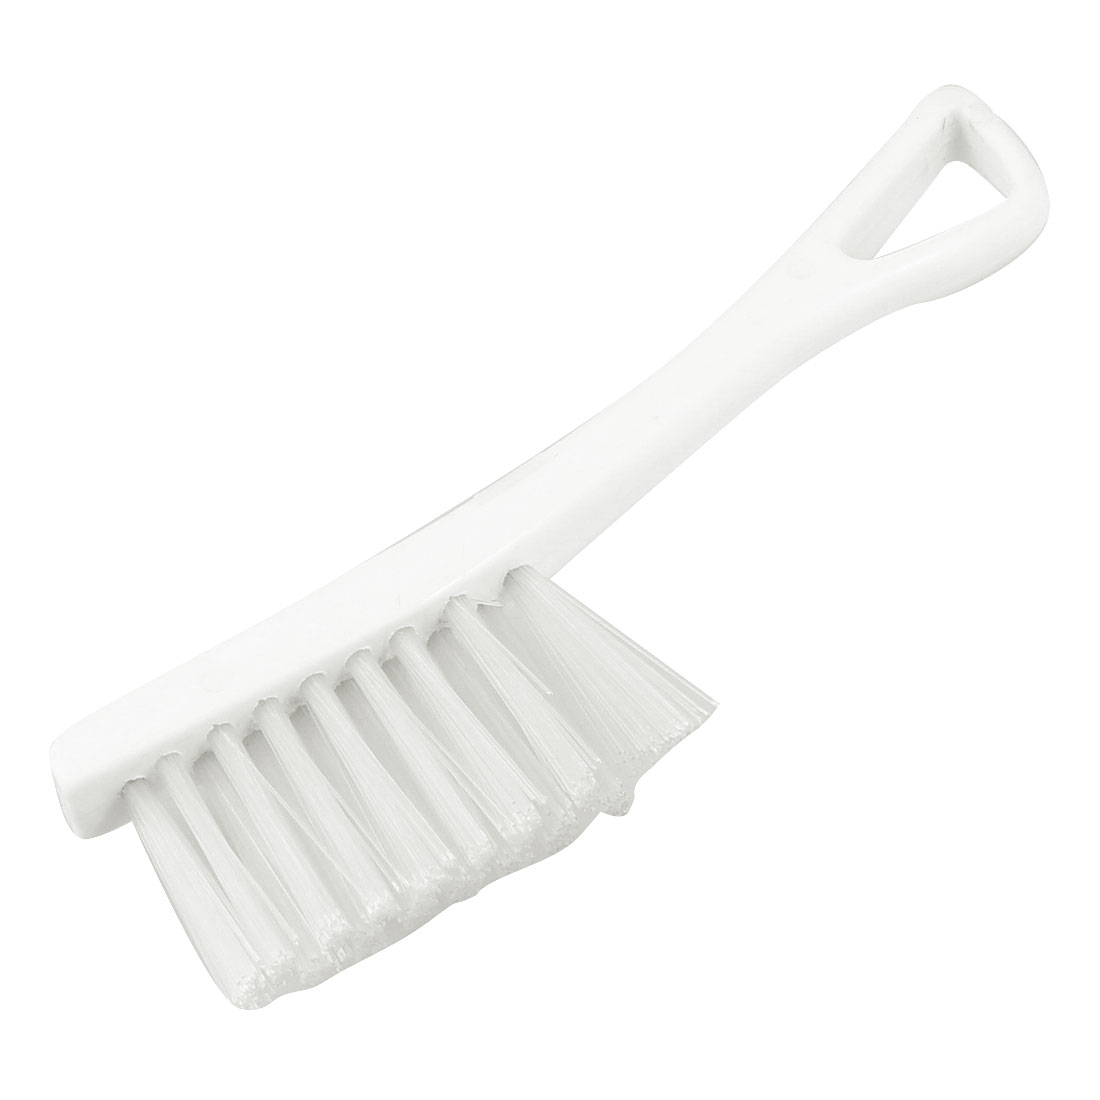 Vehicle Car Cleaning White Plastic Grip Scrubbing Brush